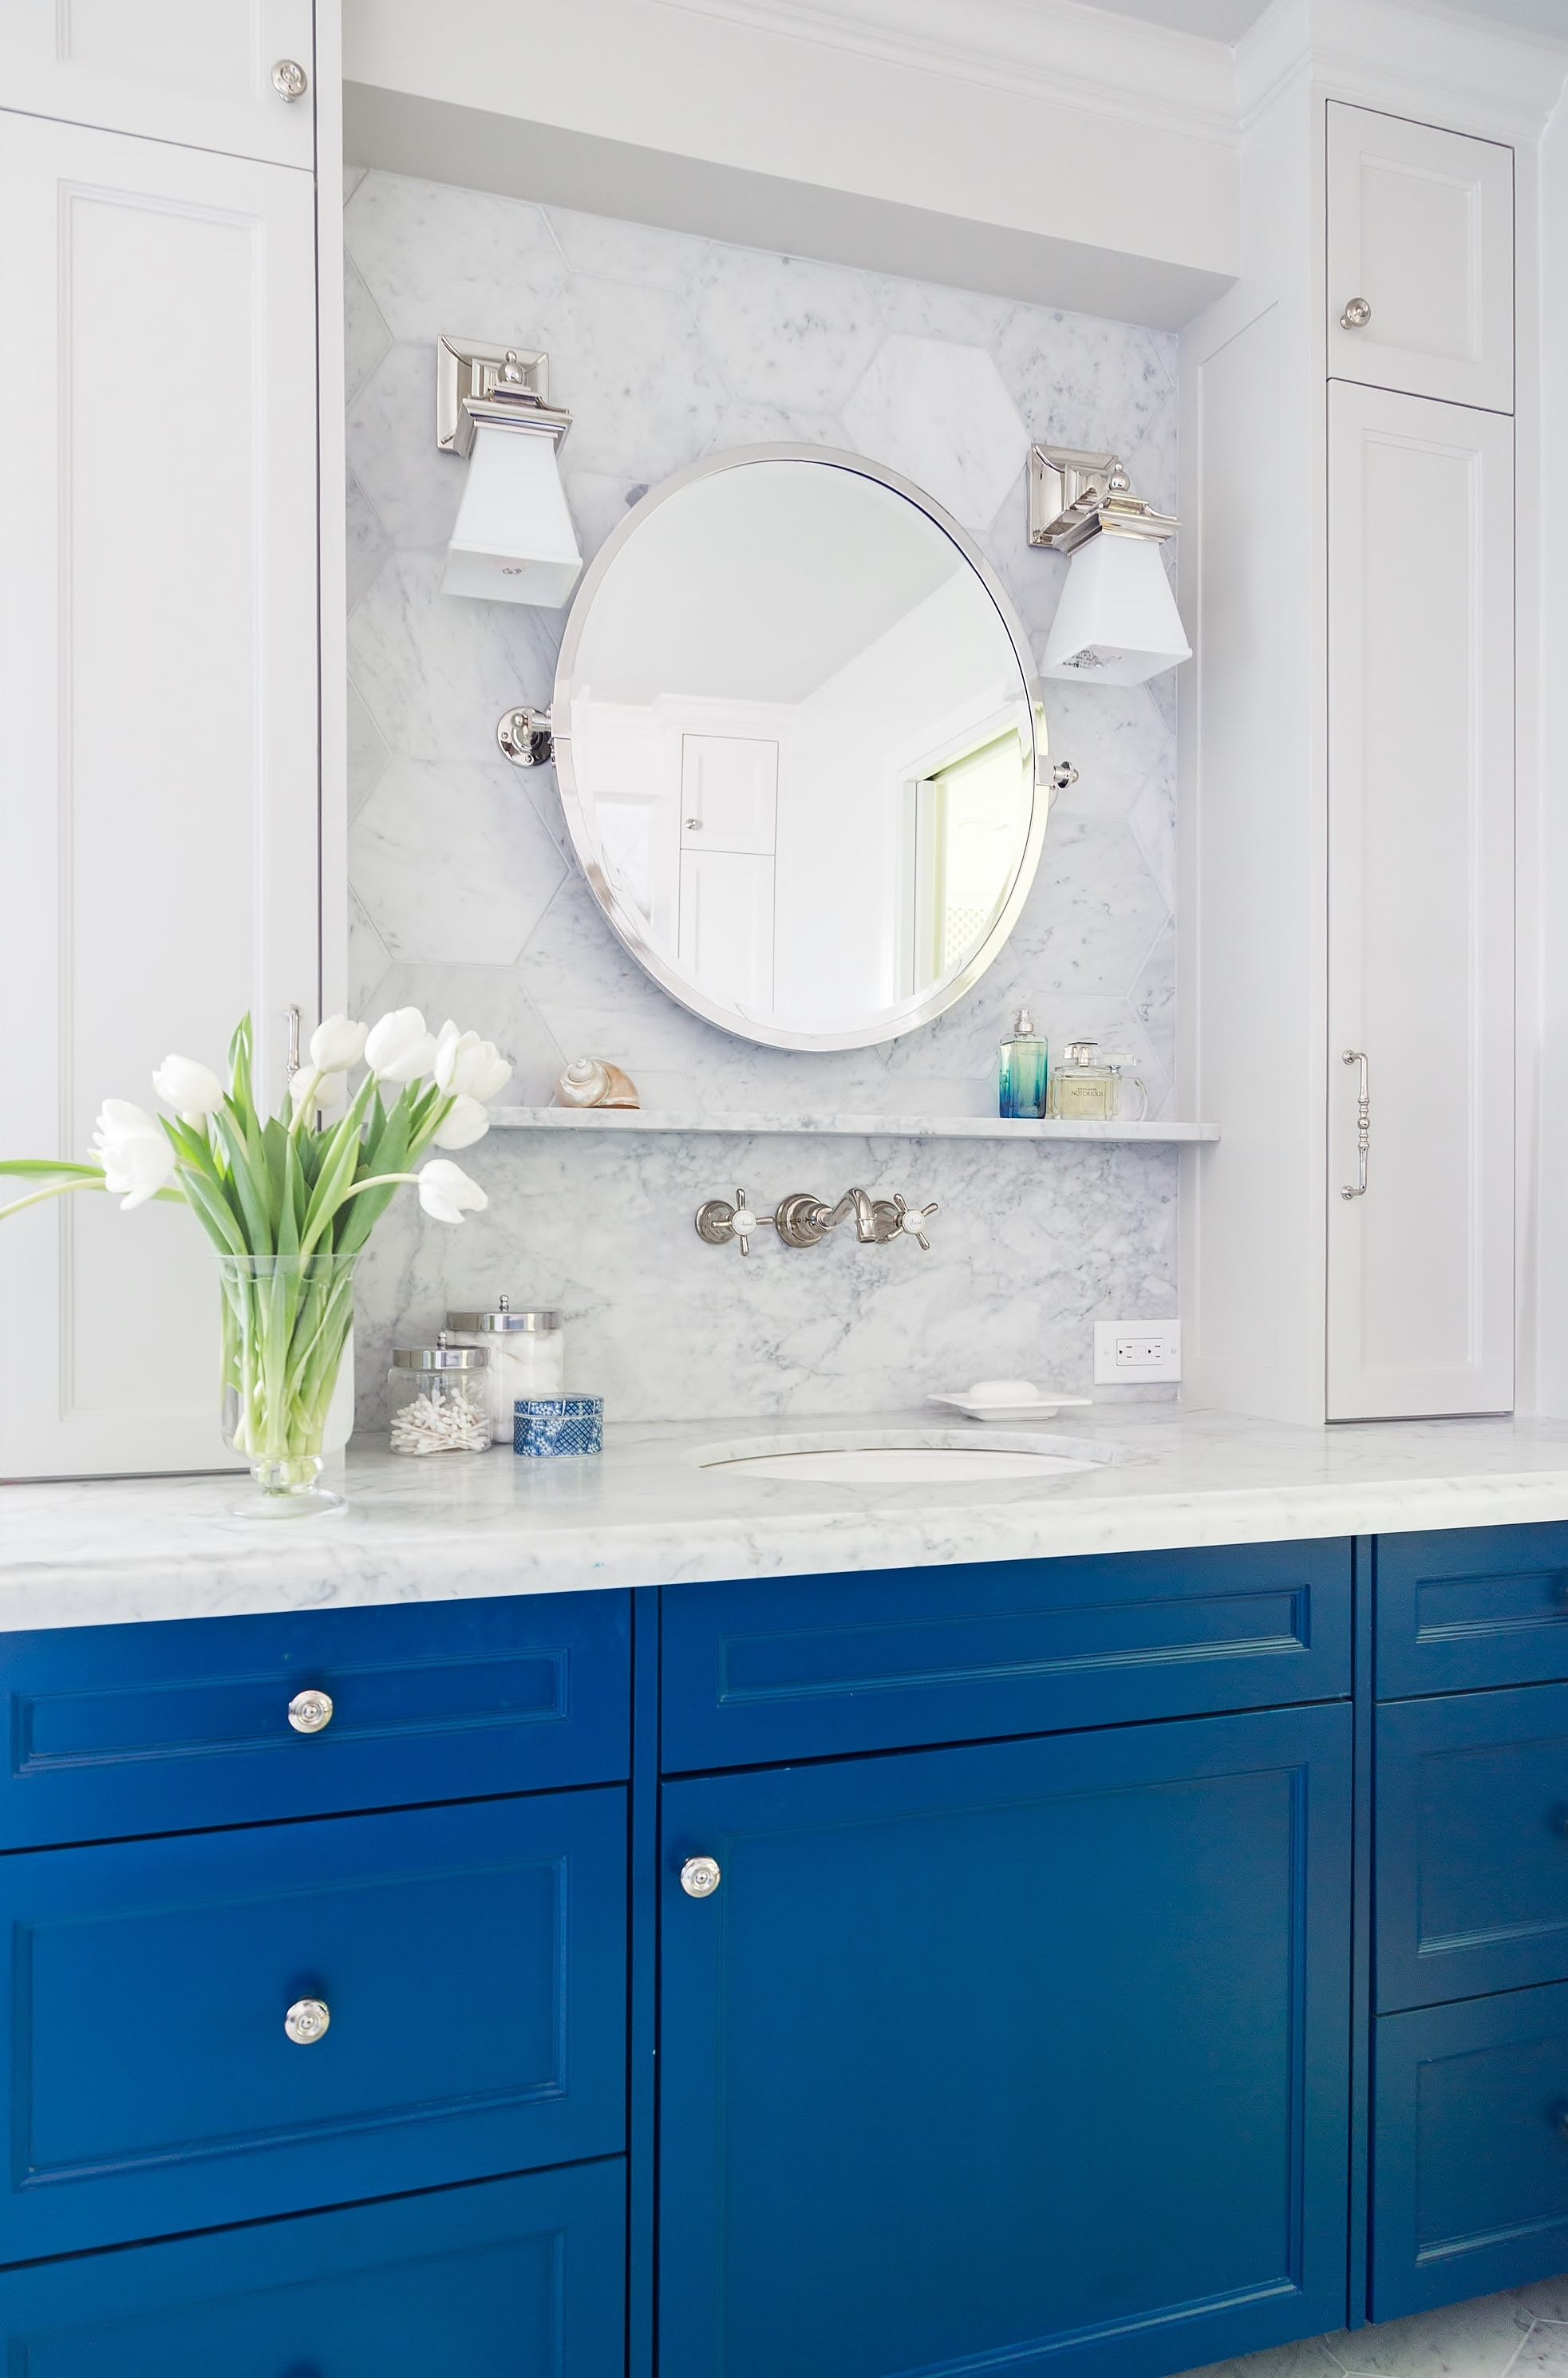 Blue lower cabinetry with Carrara marble in bathroom remodel | Carla Aston, Designer | Tori Aston, Photographer  #bathroomremodel #marblebathroom #hextile #bluecabinets